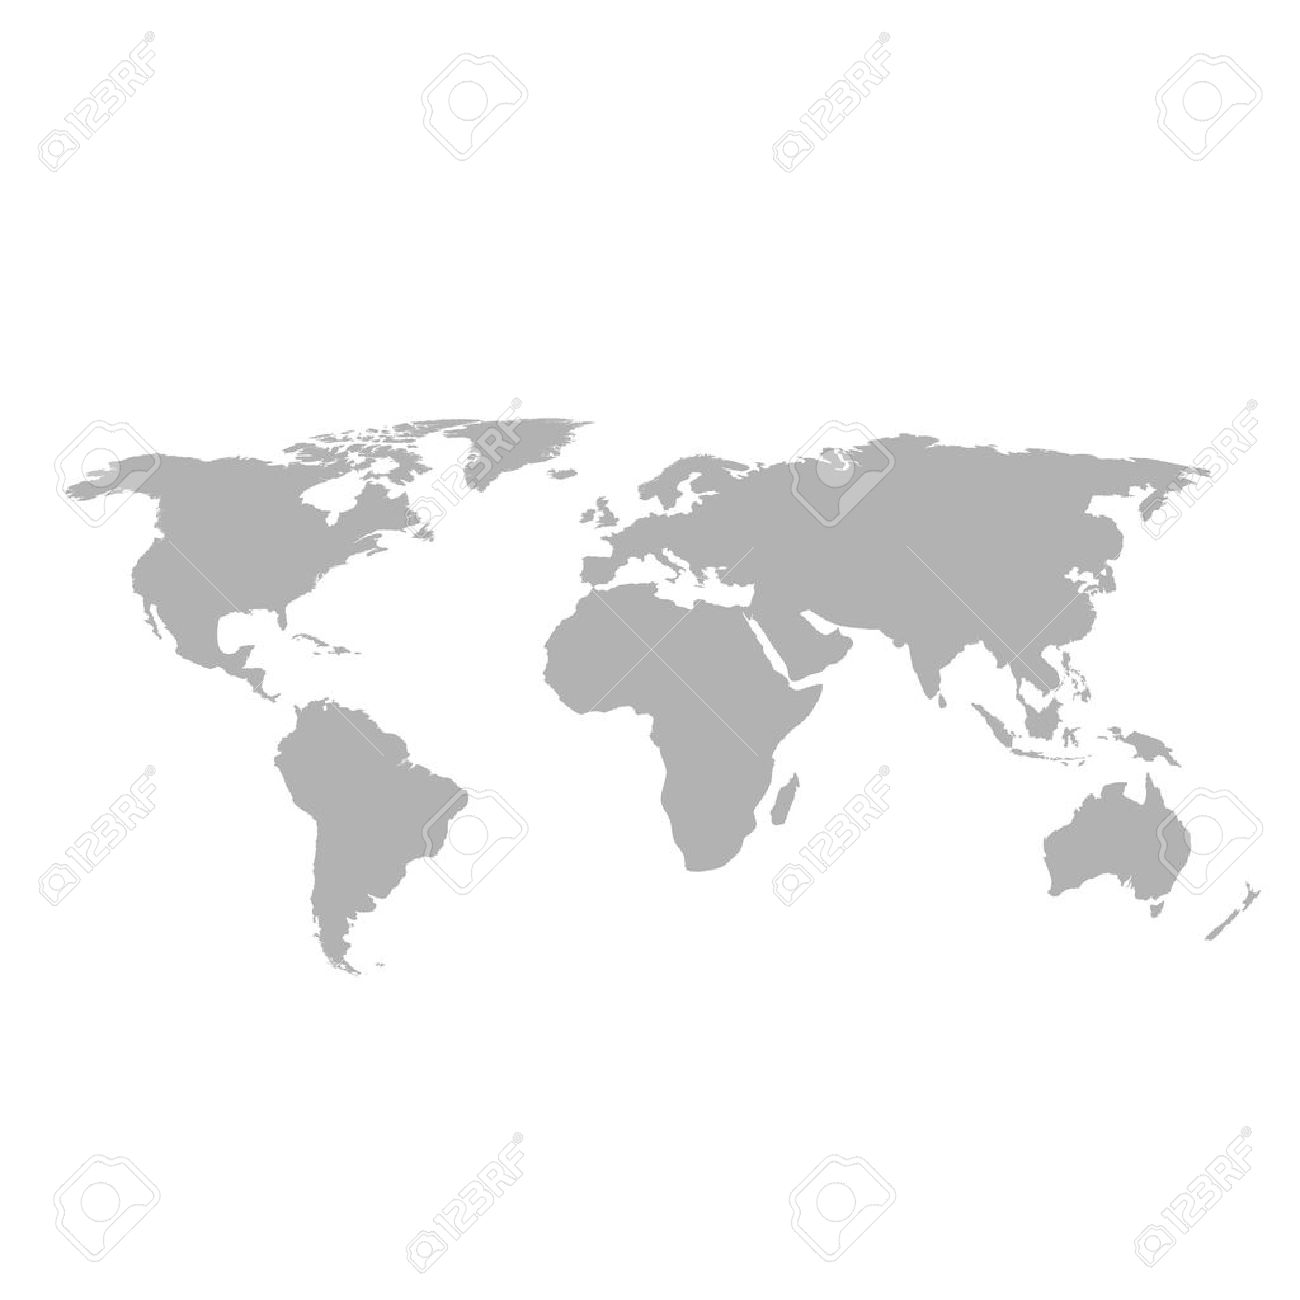 Gray World Map On White Background Royalty Free Cliparts, Vectors ...